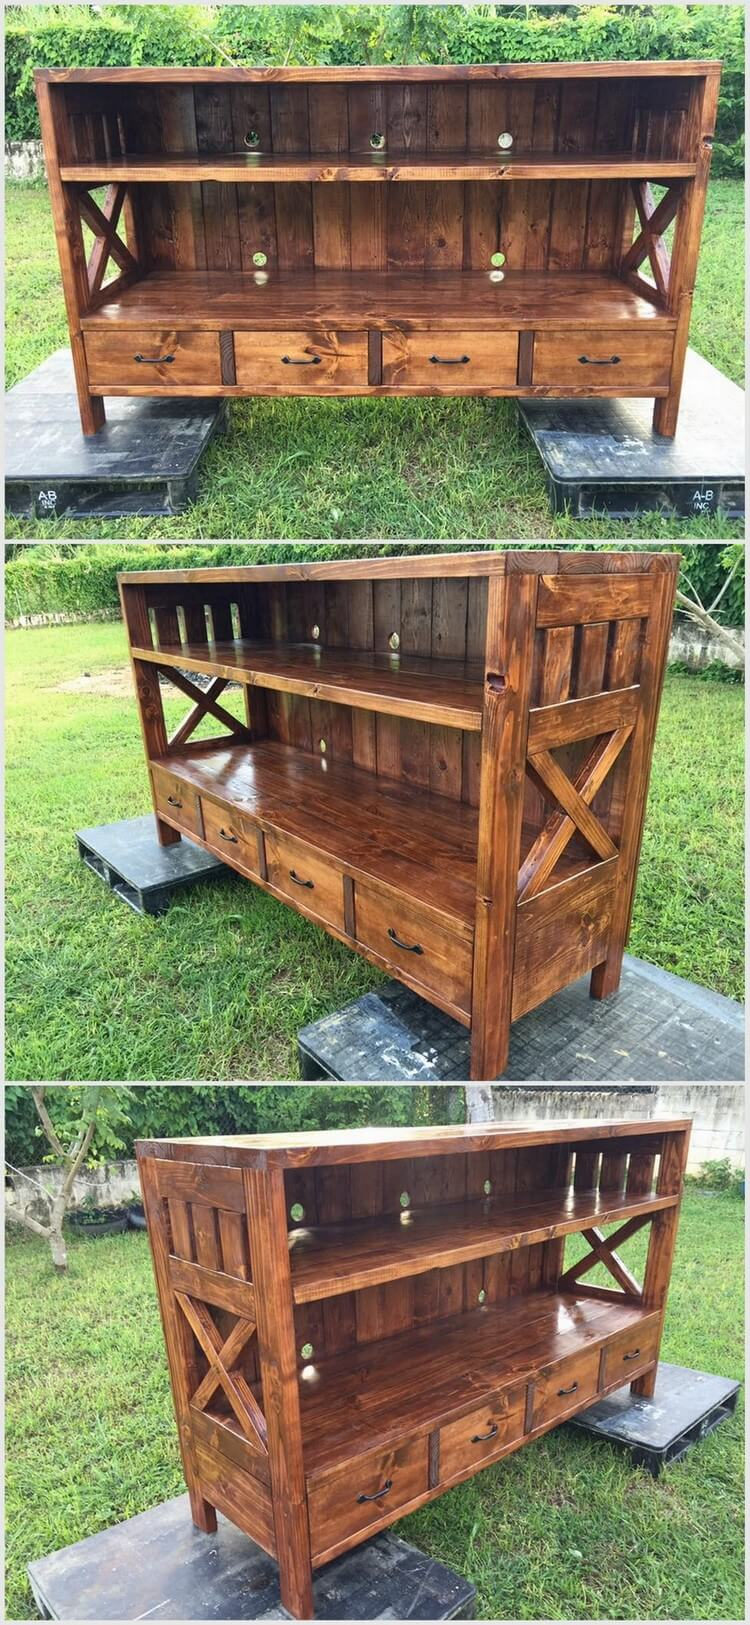 Unique and pretty wooden pallet projects pallet wood for Pallet furniture projects